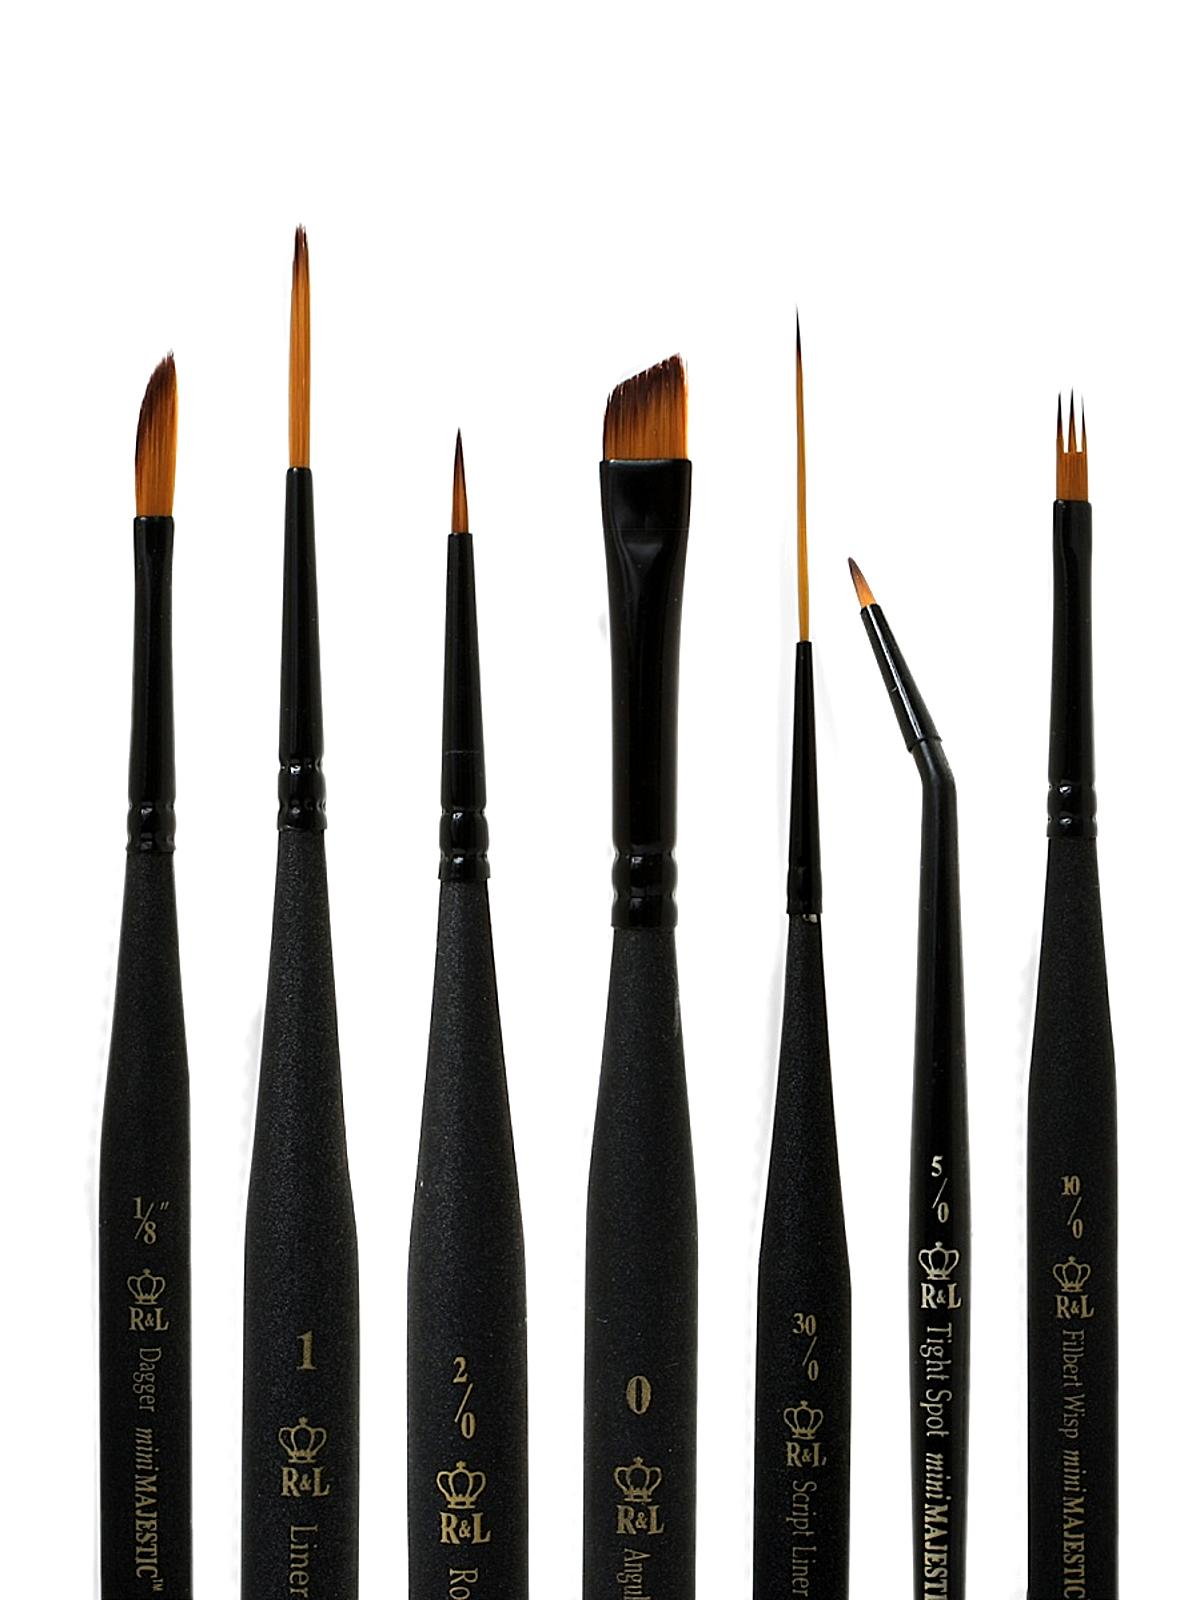 Series 4200 Mini-Majestic Brushes